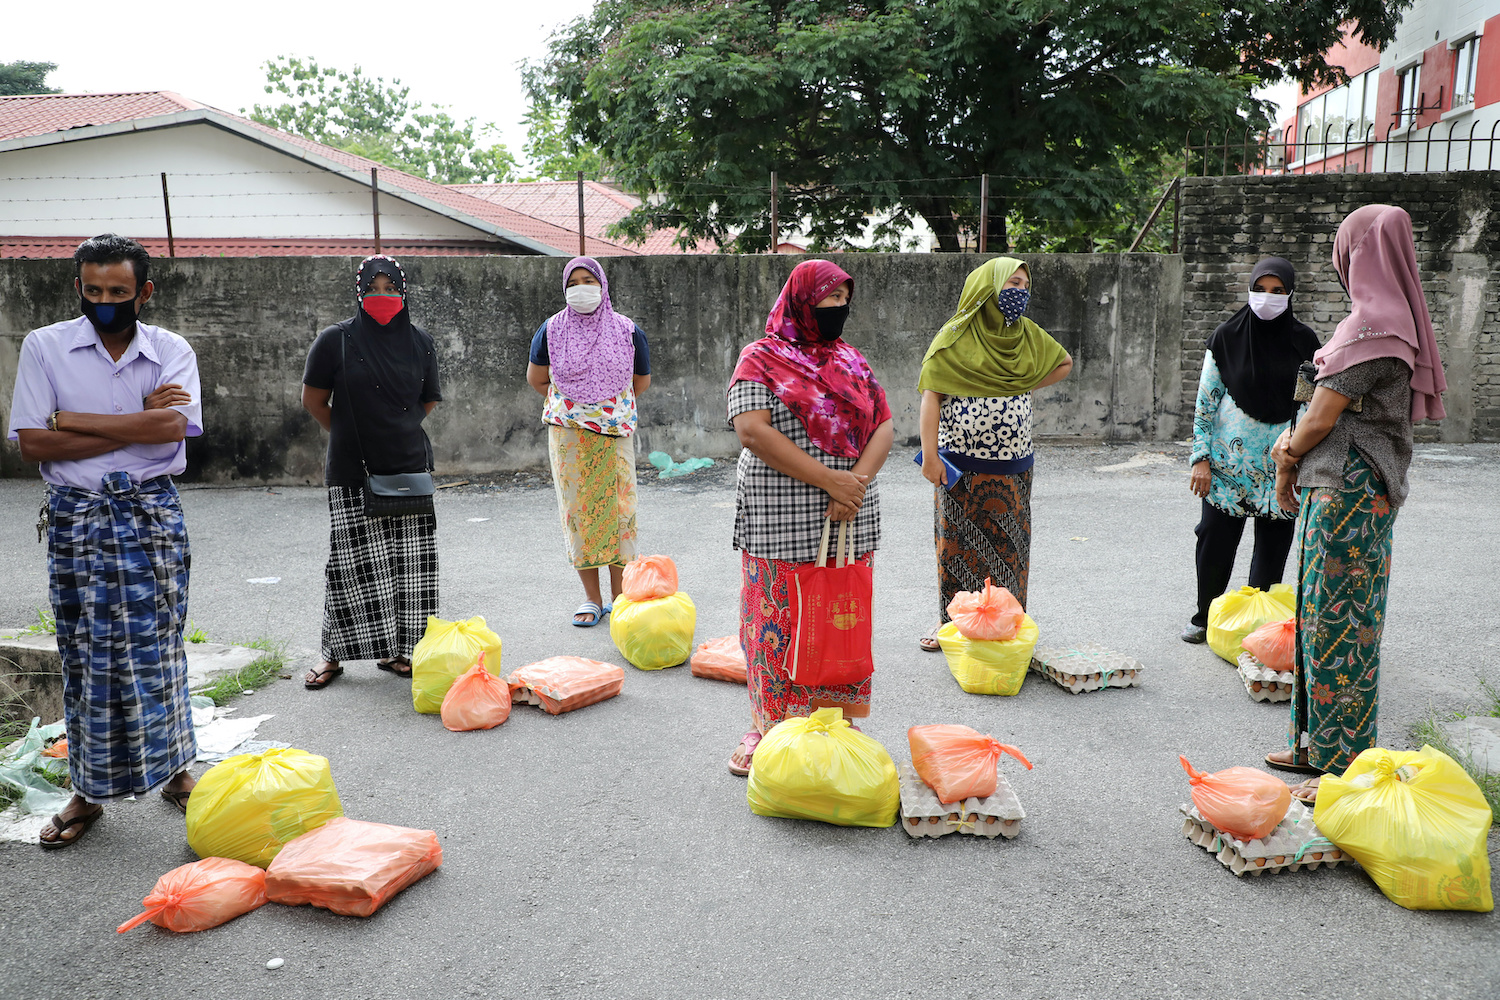 Rohingya refugees observe distancing while waiting to receive donated goods from volunteers in Kuala Lumpur in April. (Reuters Photo)